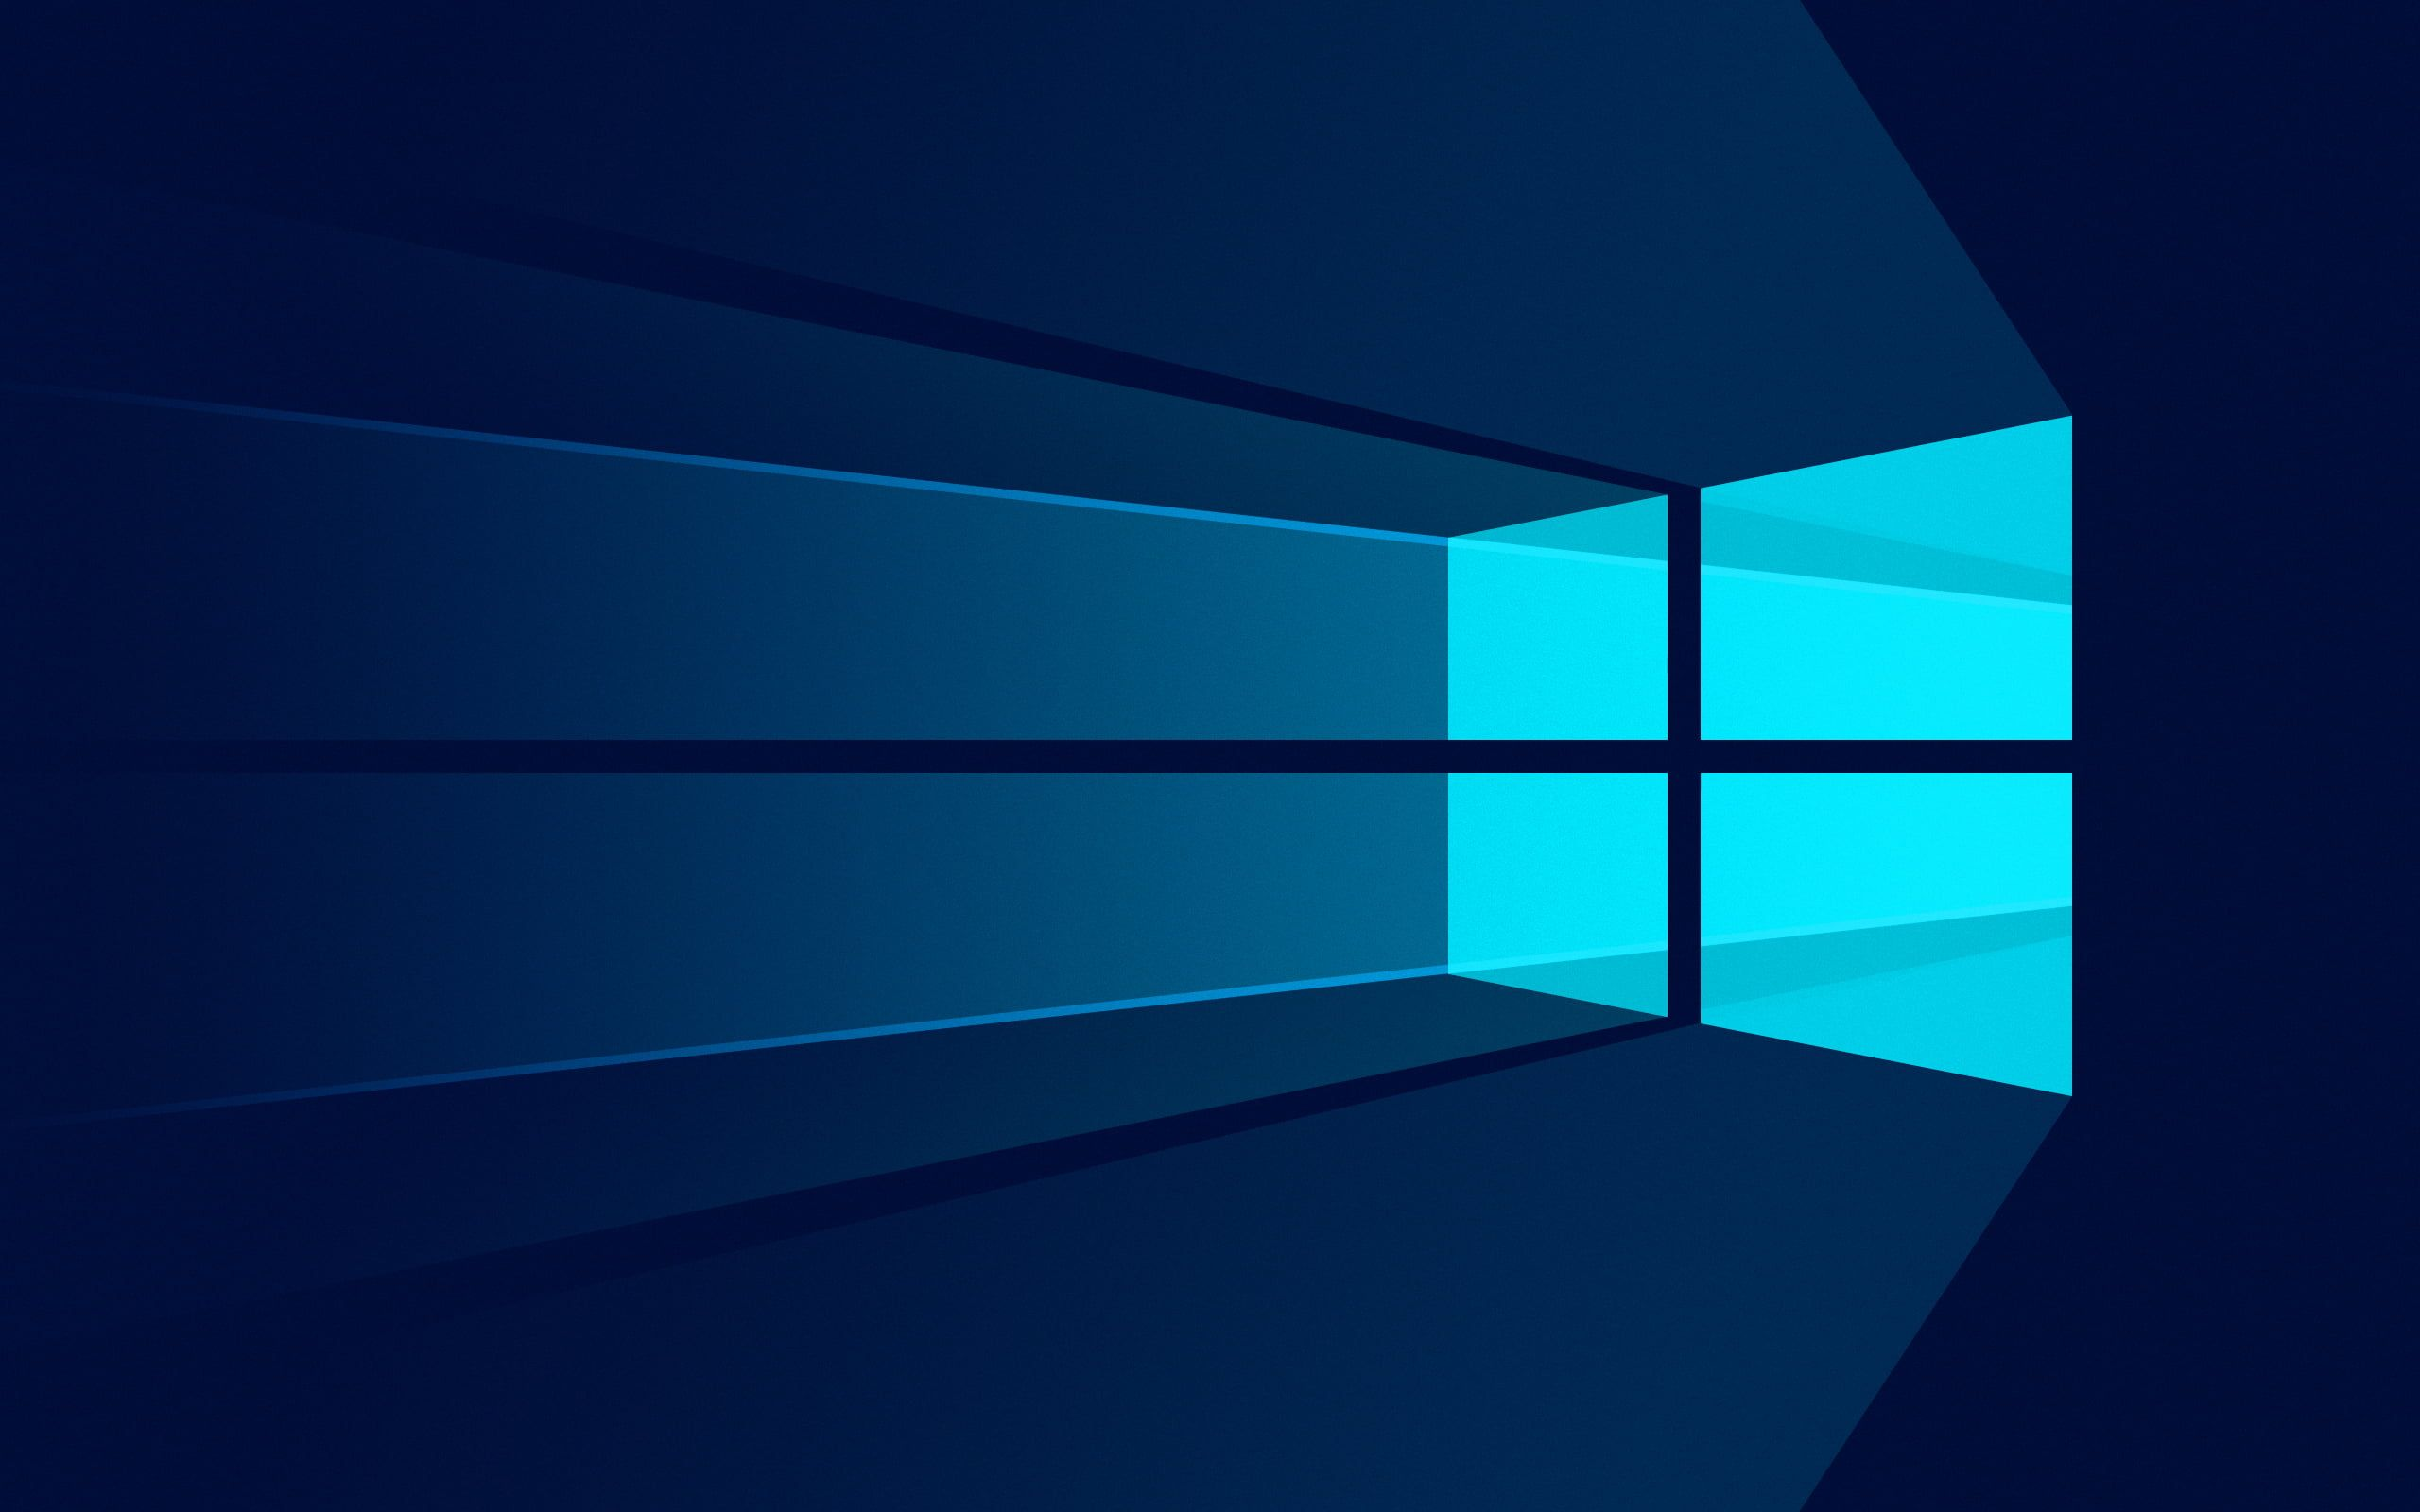 Windows Logo Digital Wallpaper Microsoft Microsoft Windows 10 2k Wallpaper Hdwallpaper De Windows Wallpaper Microsoft Wallpaper Windows Desktop Wallpaper